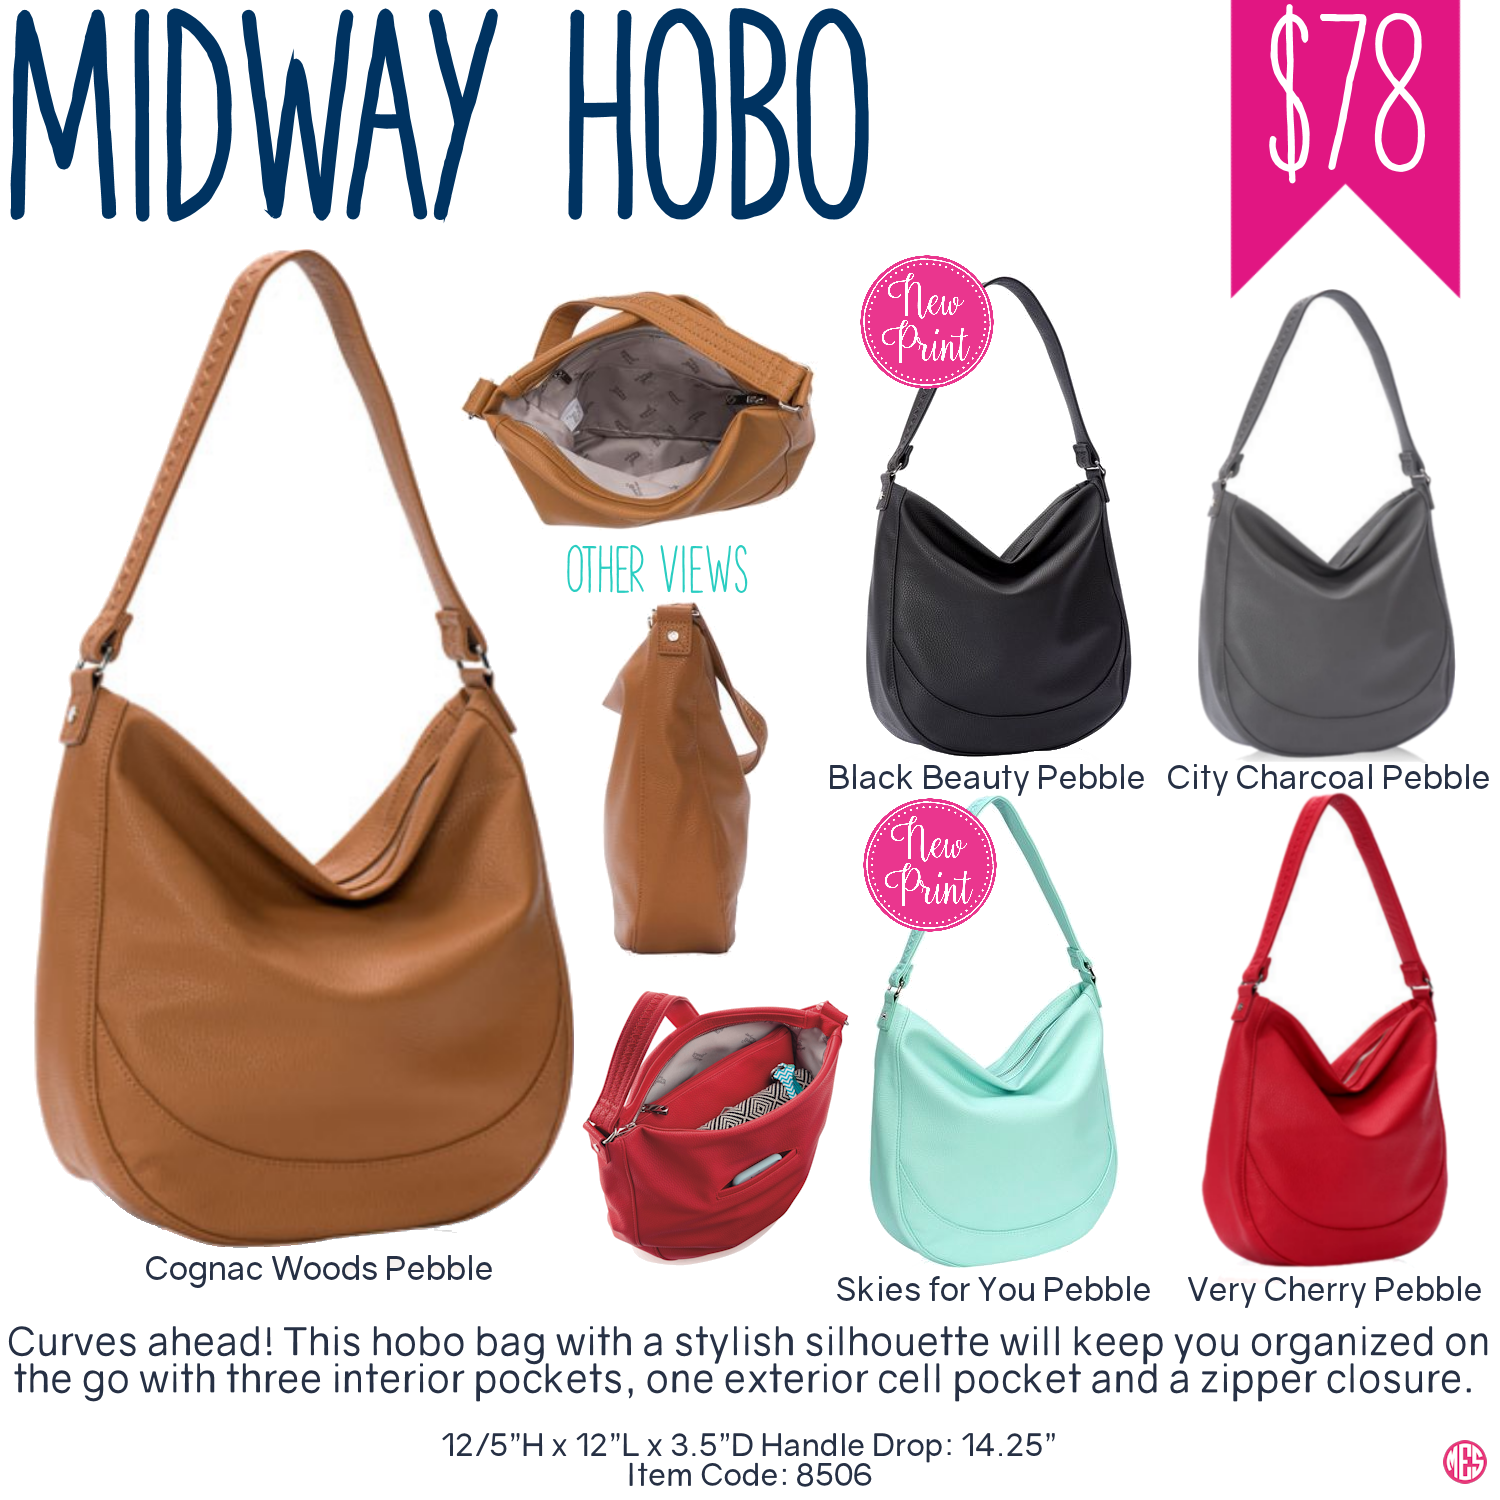 Thirty-One Midway Hobo Purse - Spring/Summer 2017 | Thirty-One ...